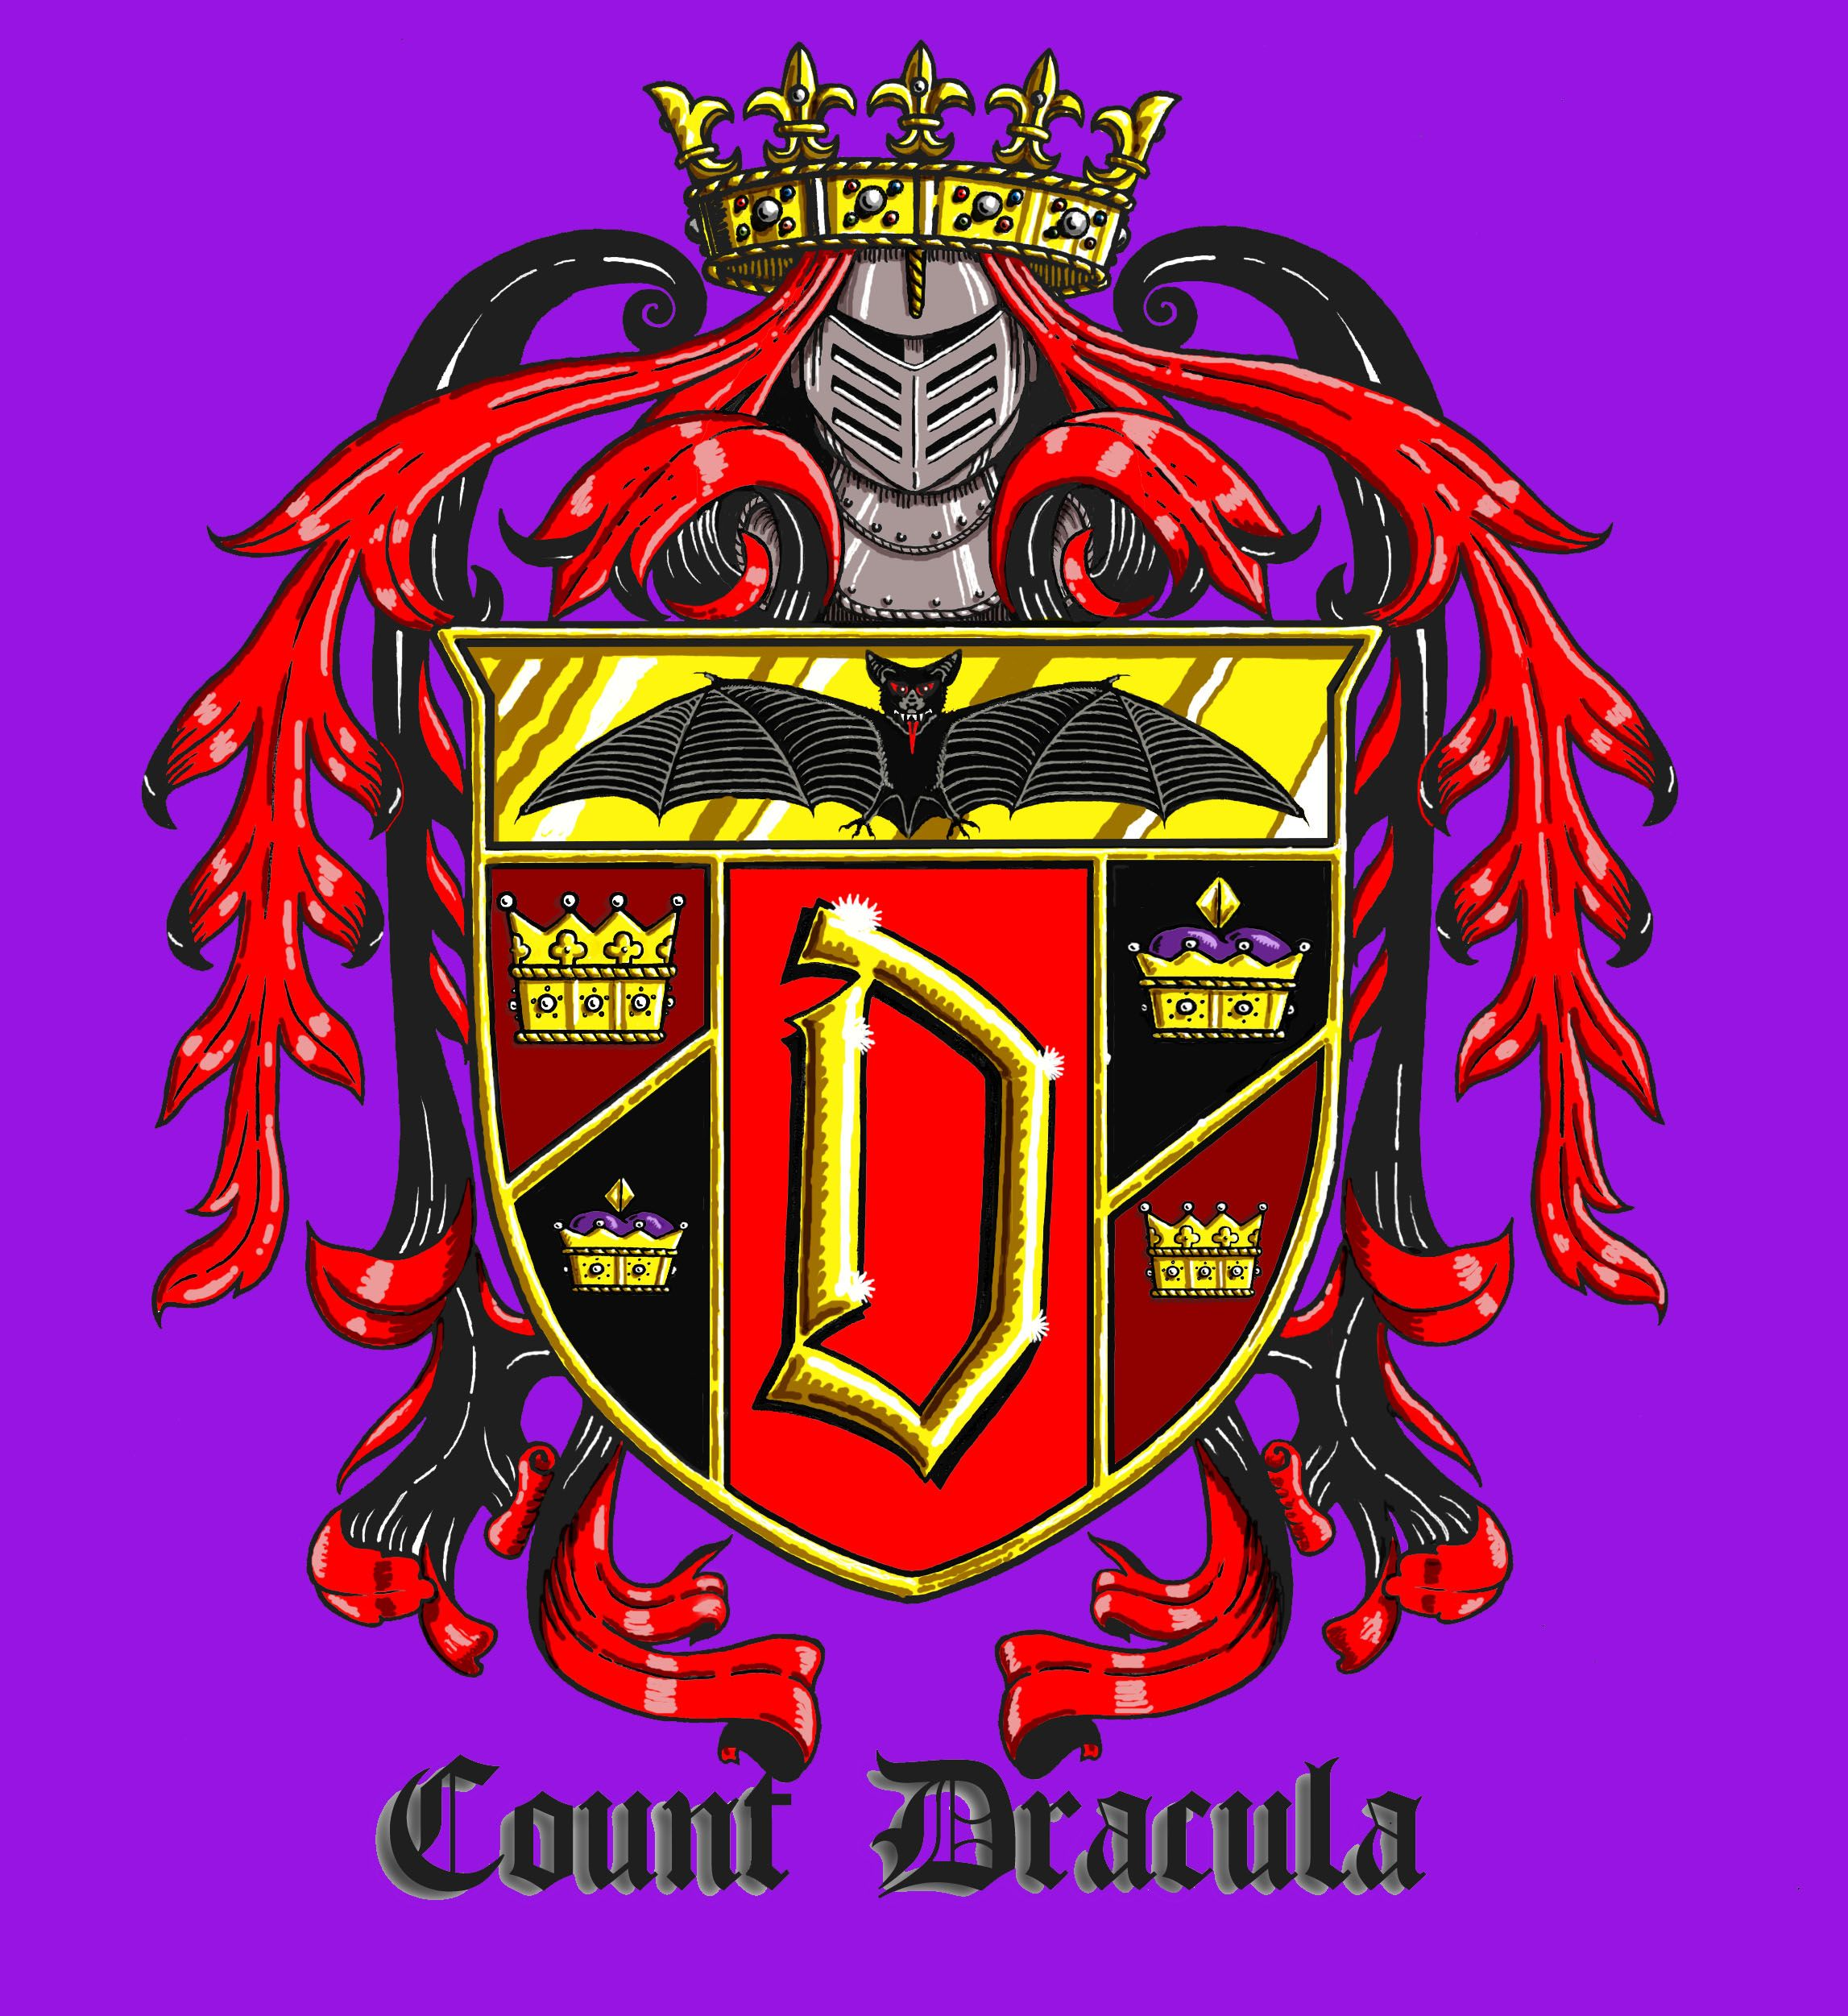 Colored version of Dracula's RIng. All these images are copyrighted 2013 by David T. St. Albans